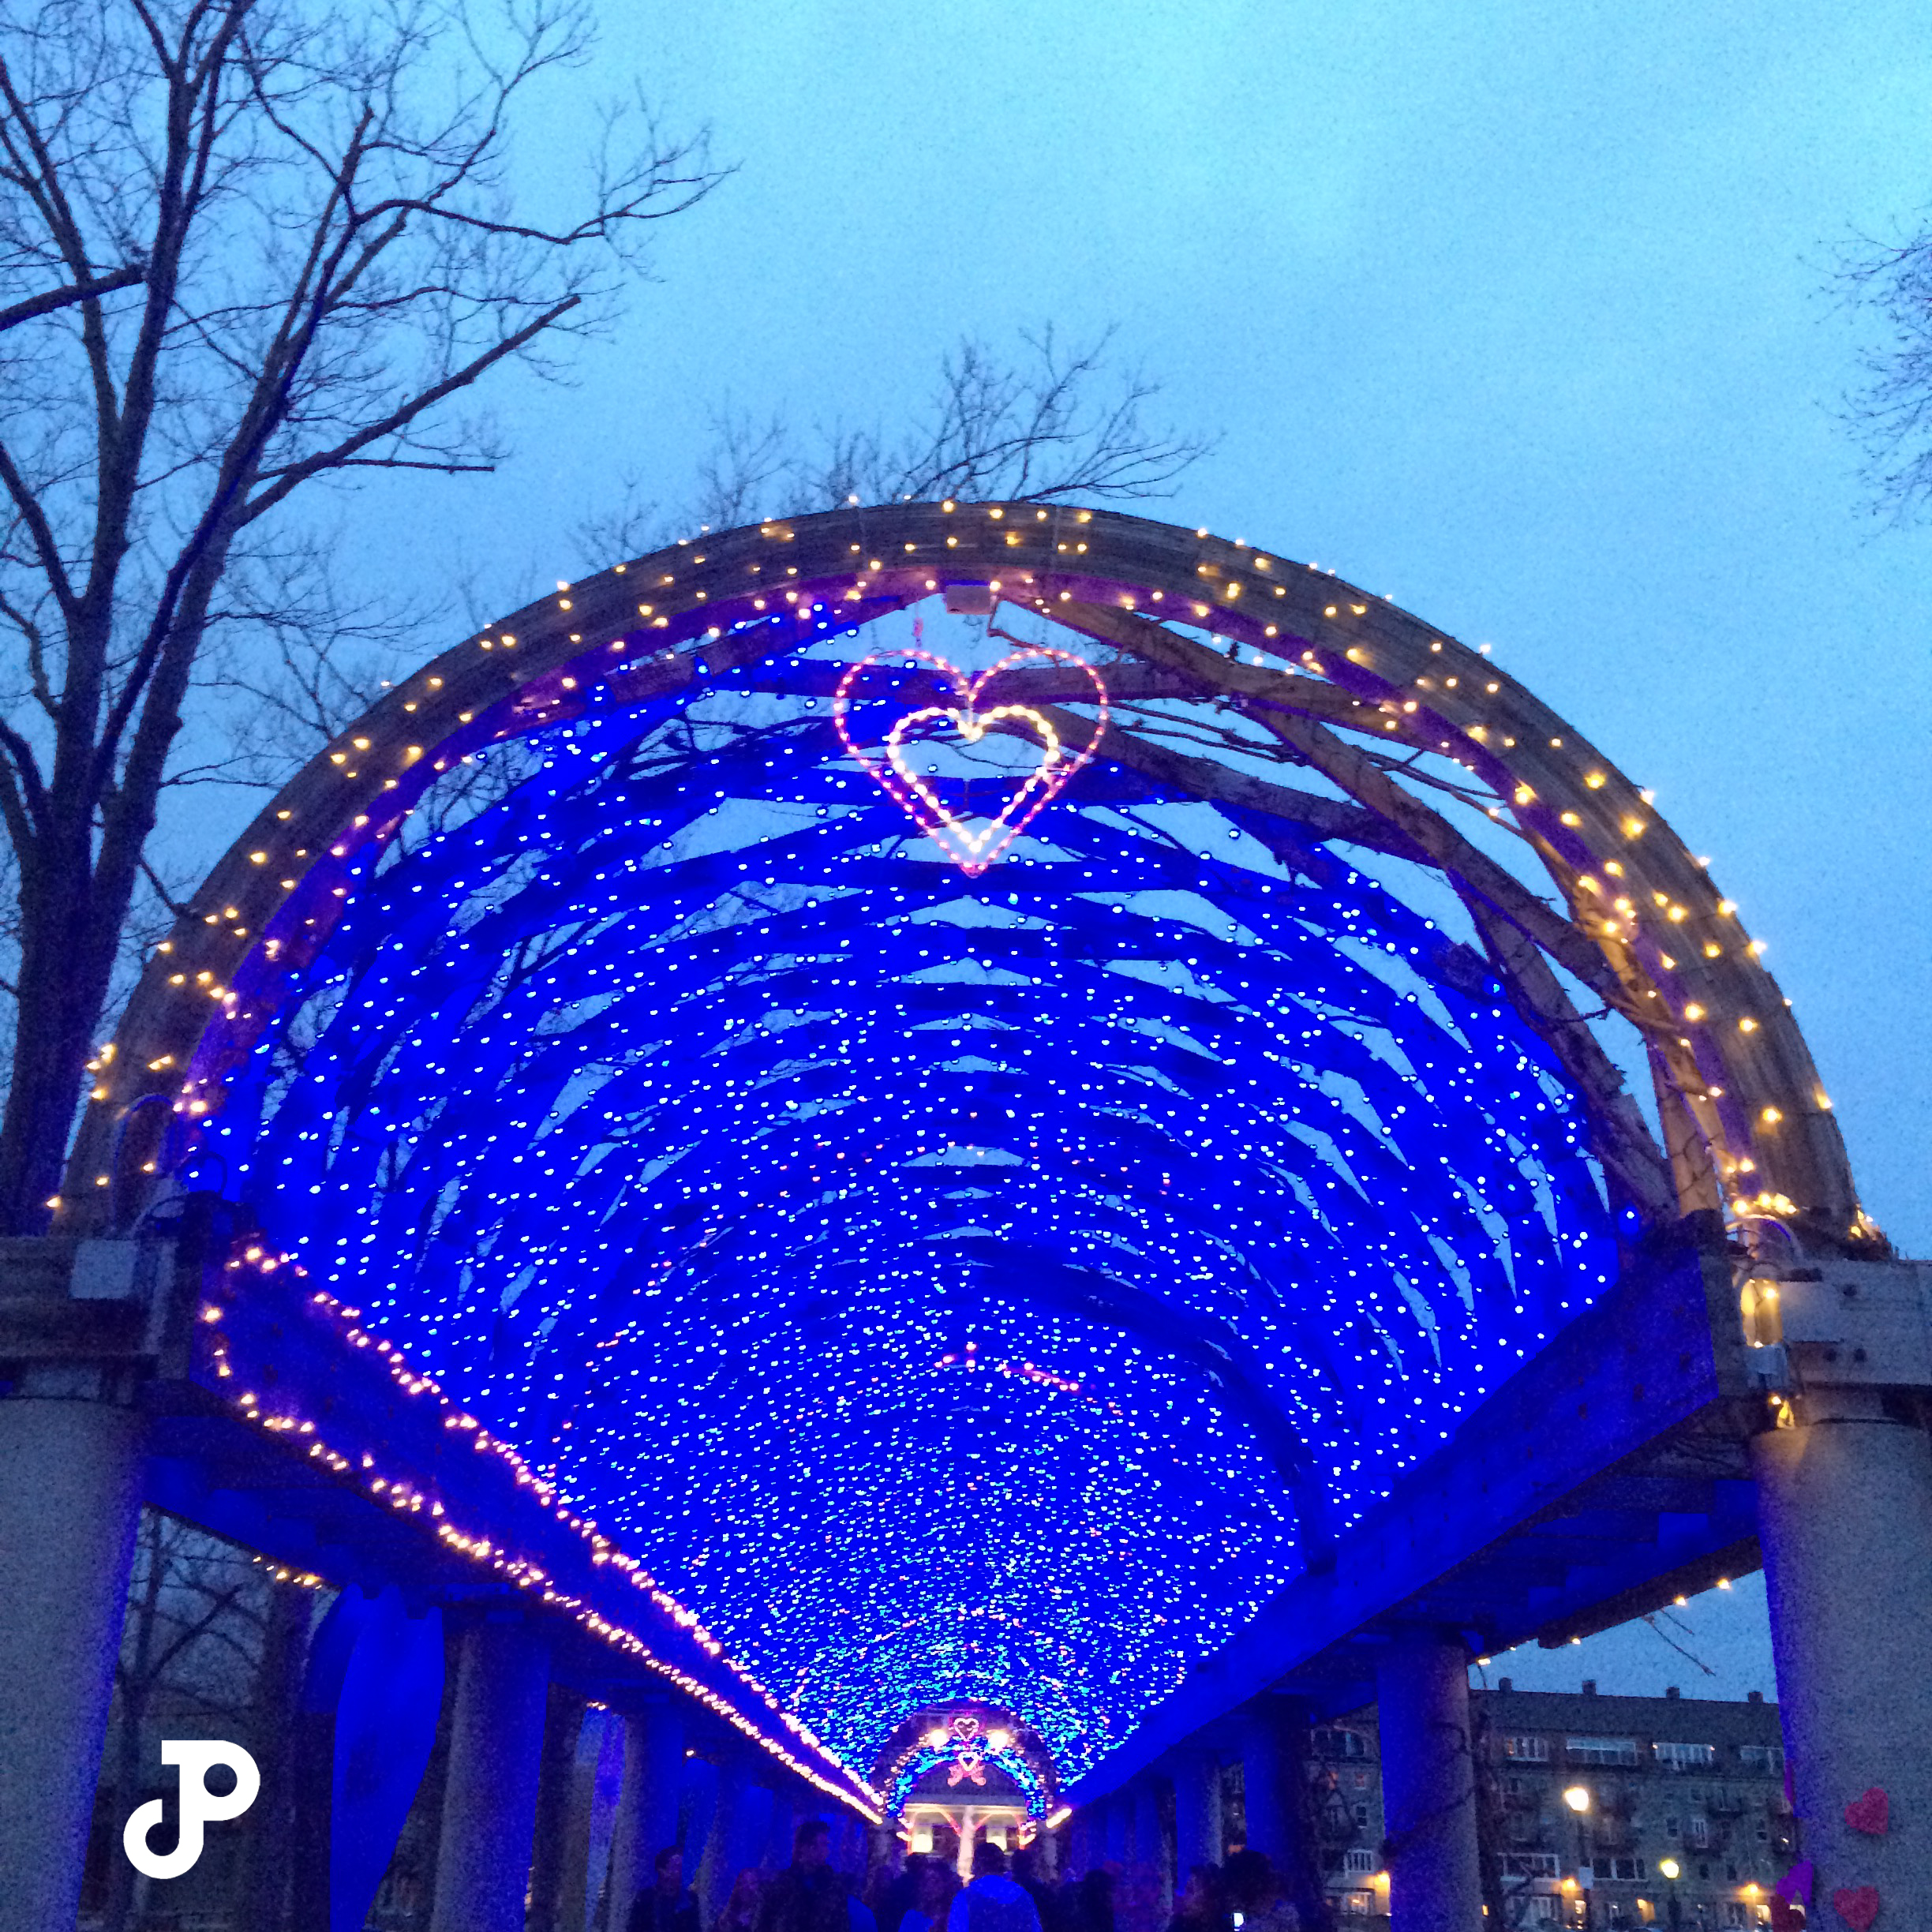 a wooden archway decorated with thousands of bright blue fairy lights in Columbus Park